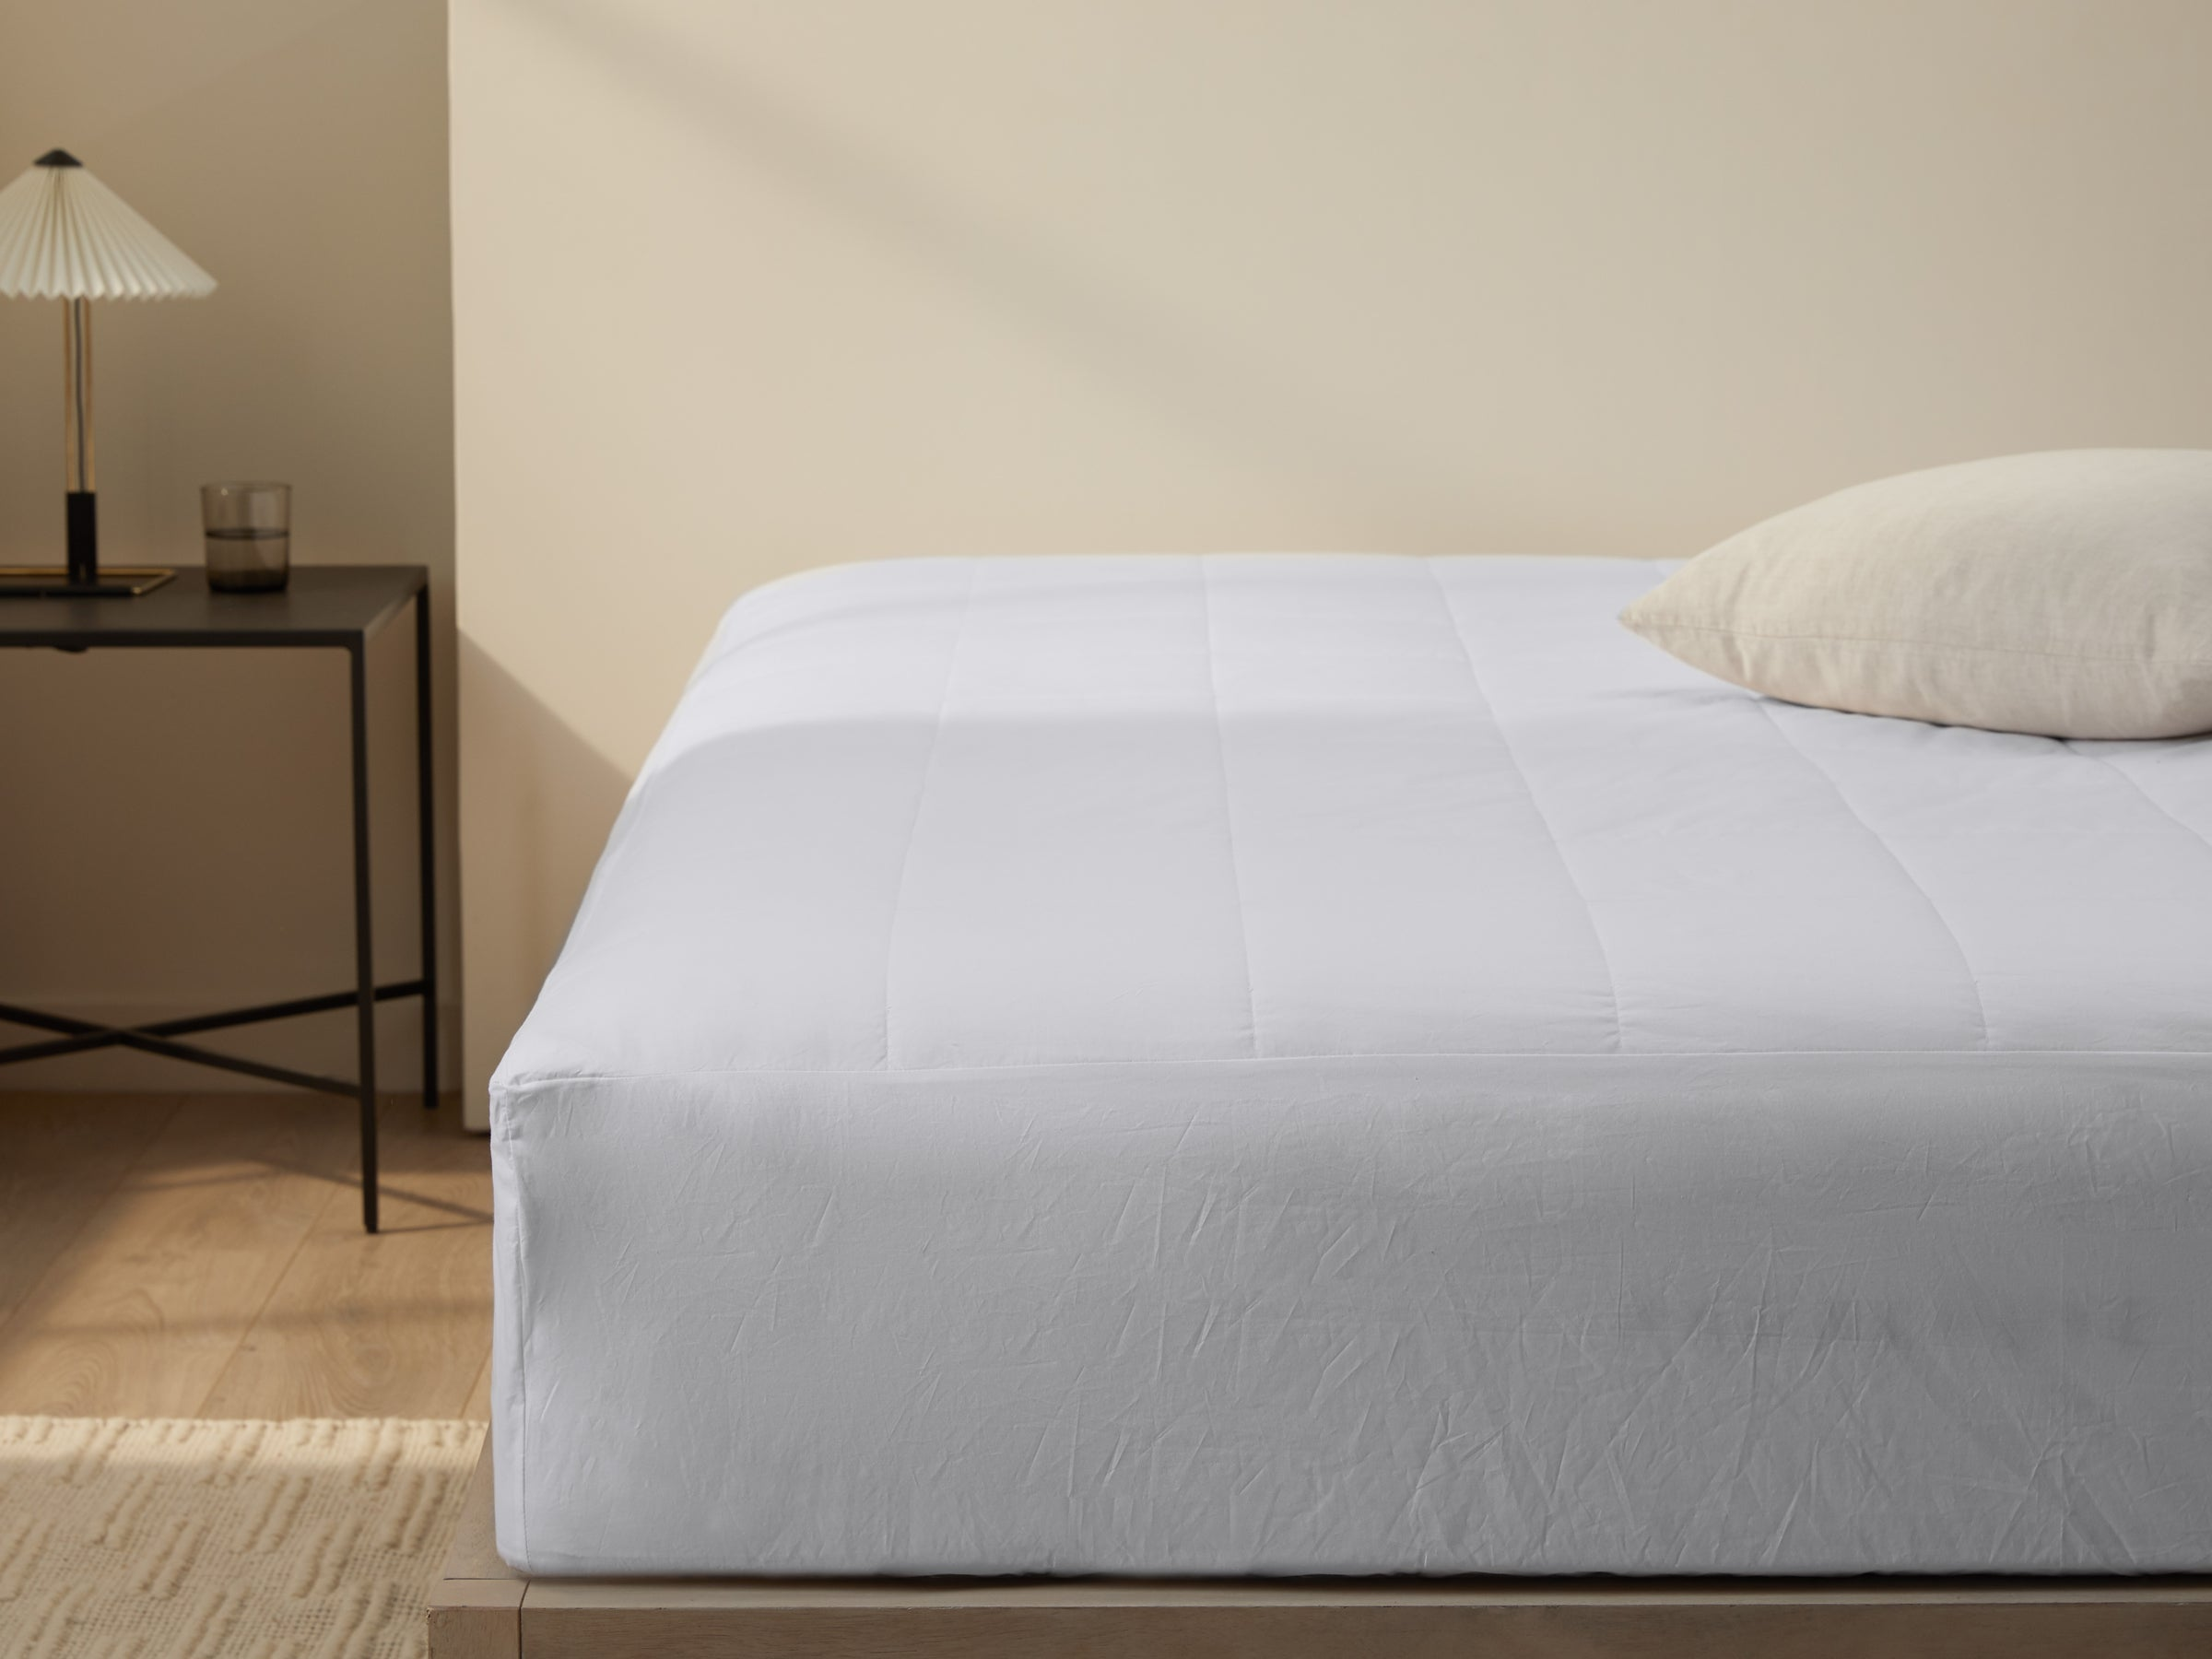 Cotton Mattress Protector Shown In A Room